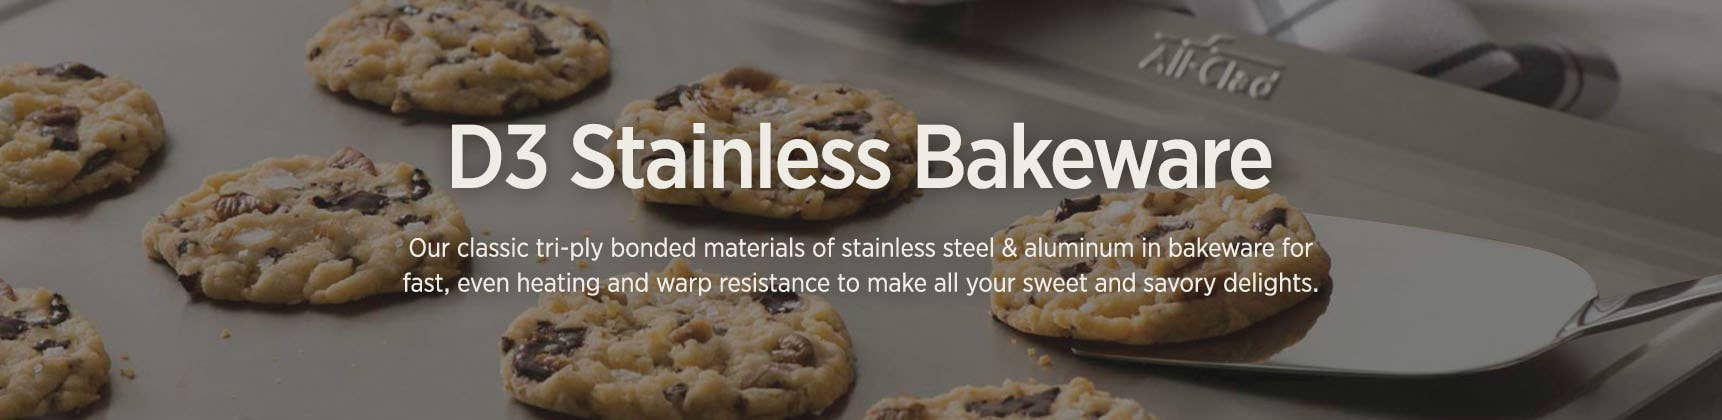 D3 Stainless Bakeware